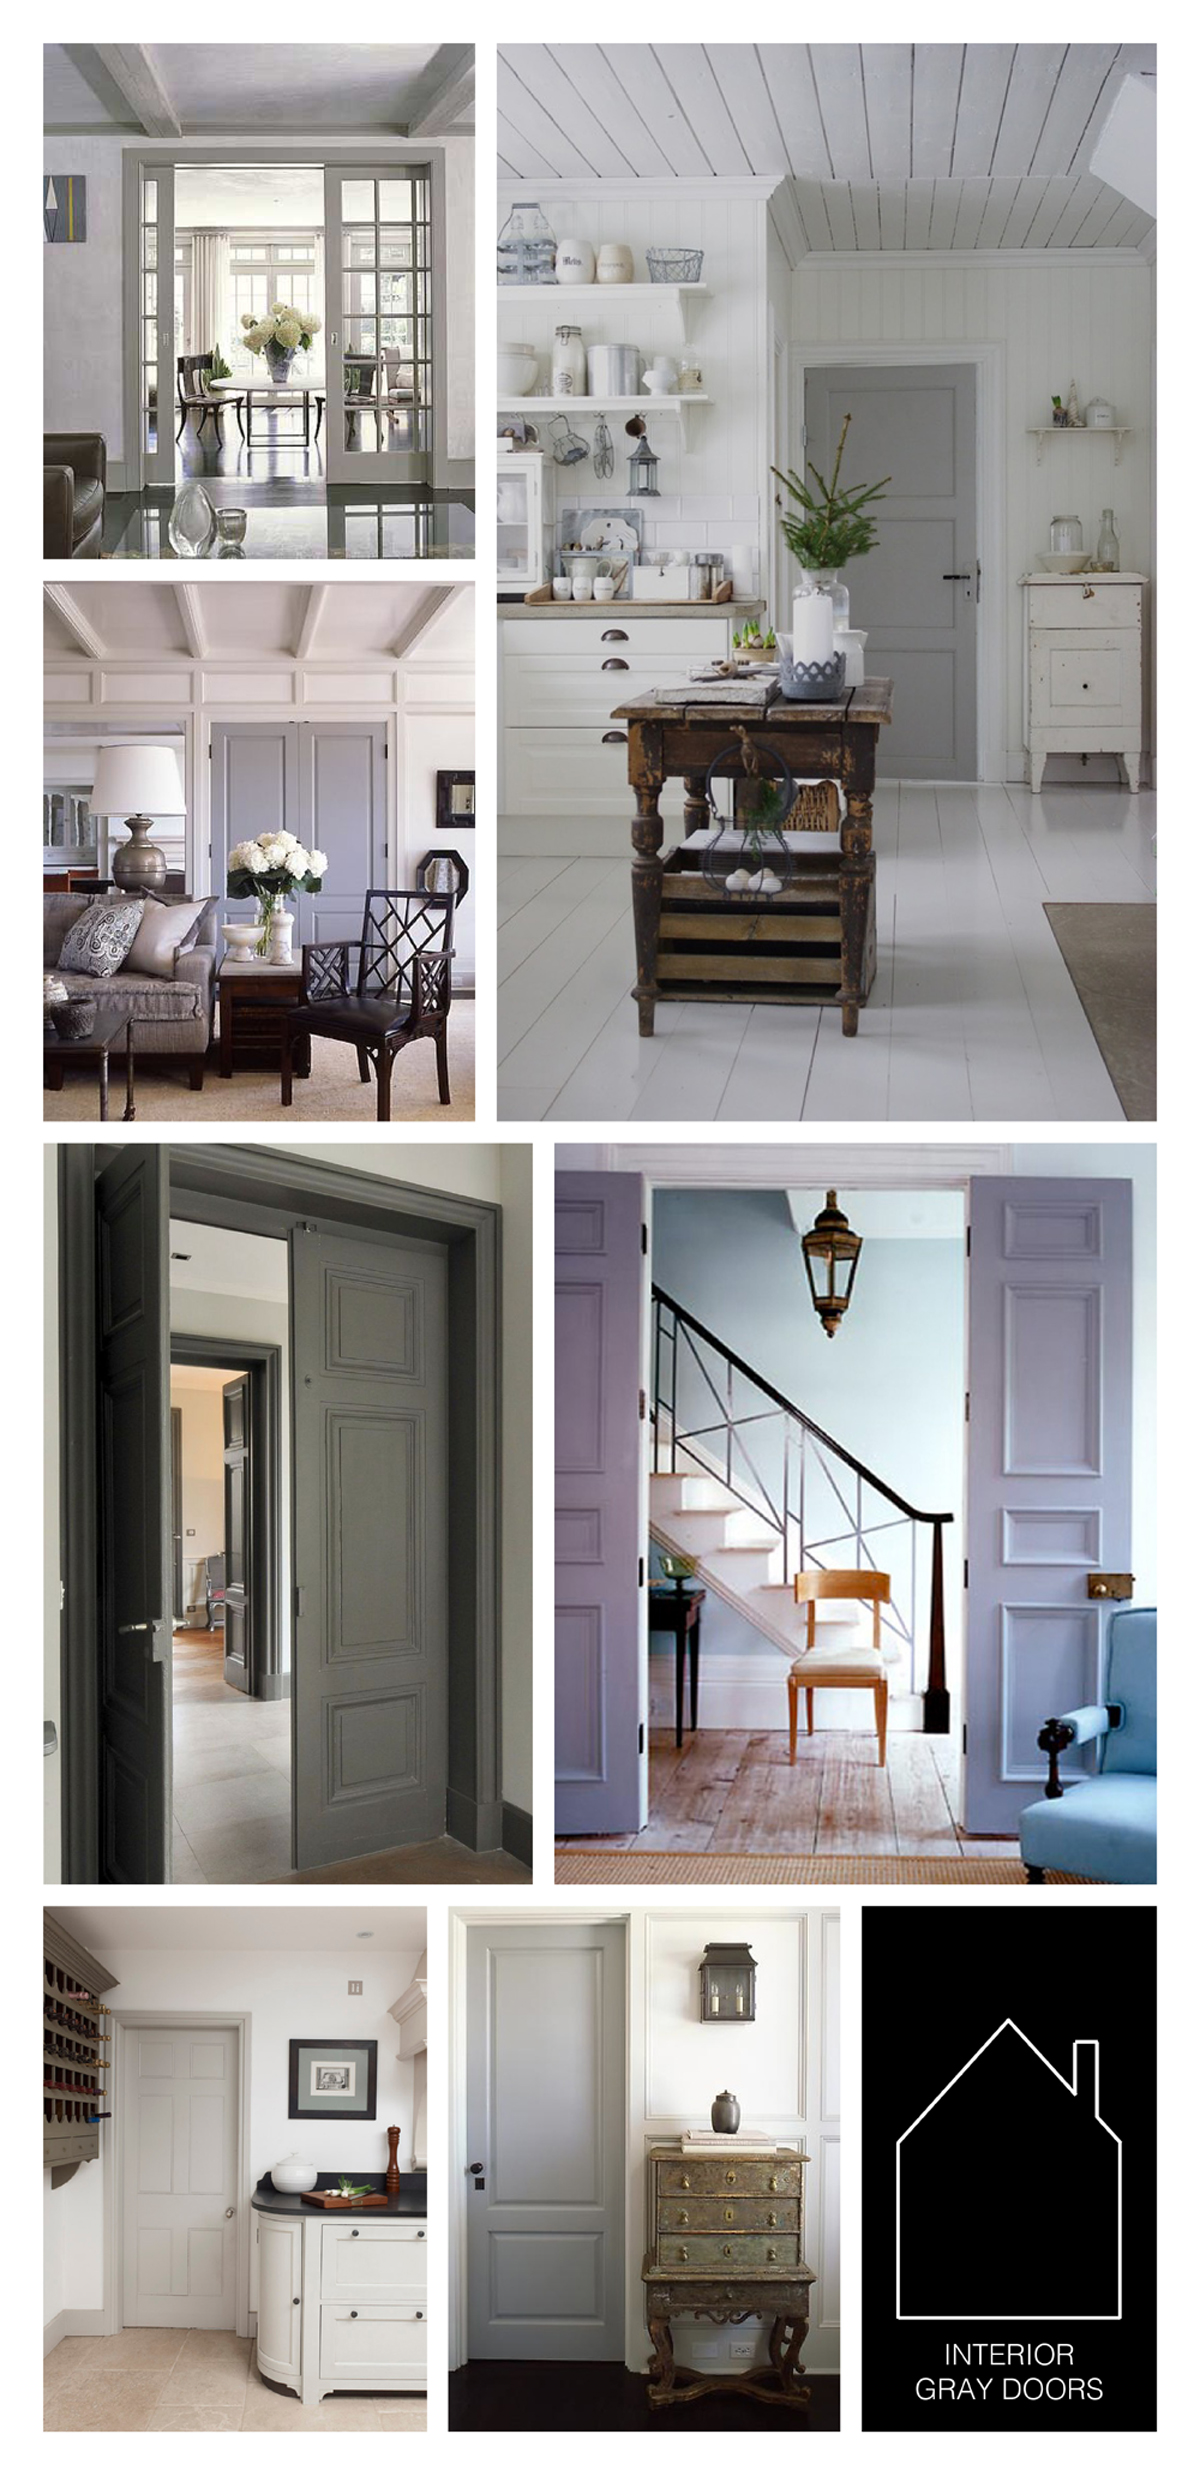 from top left - via  BHG  - via  M Street Style  - design by  SR Gambrel  - source unknown - design by  SR Grambel - kitchen by  Chalon  via  The Paper Mulberry   - design by  SR Gambrel